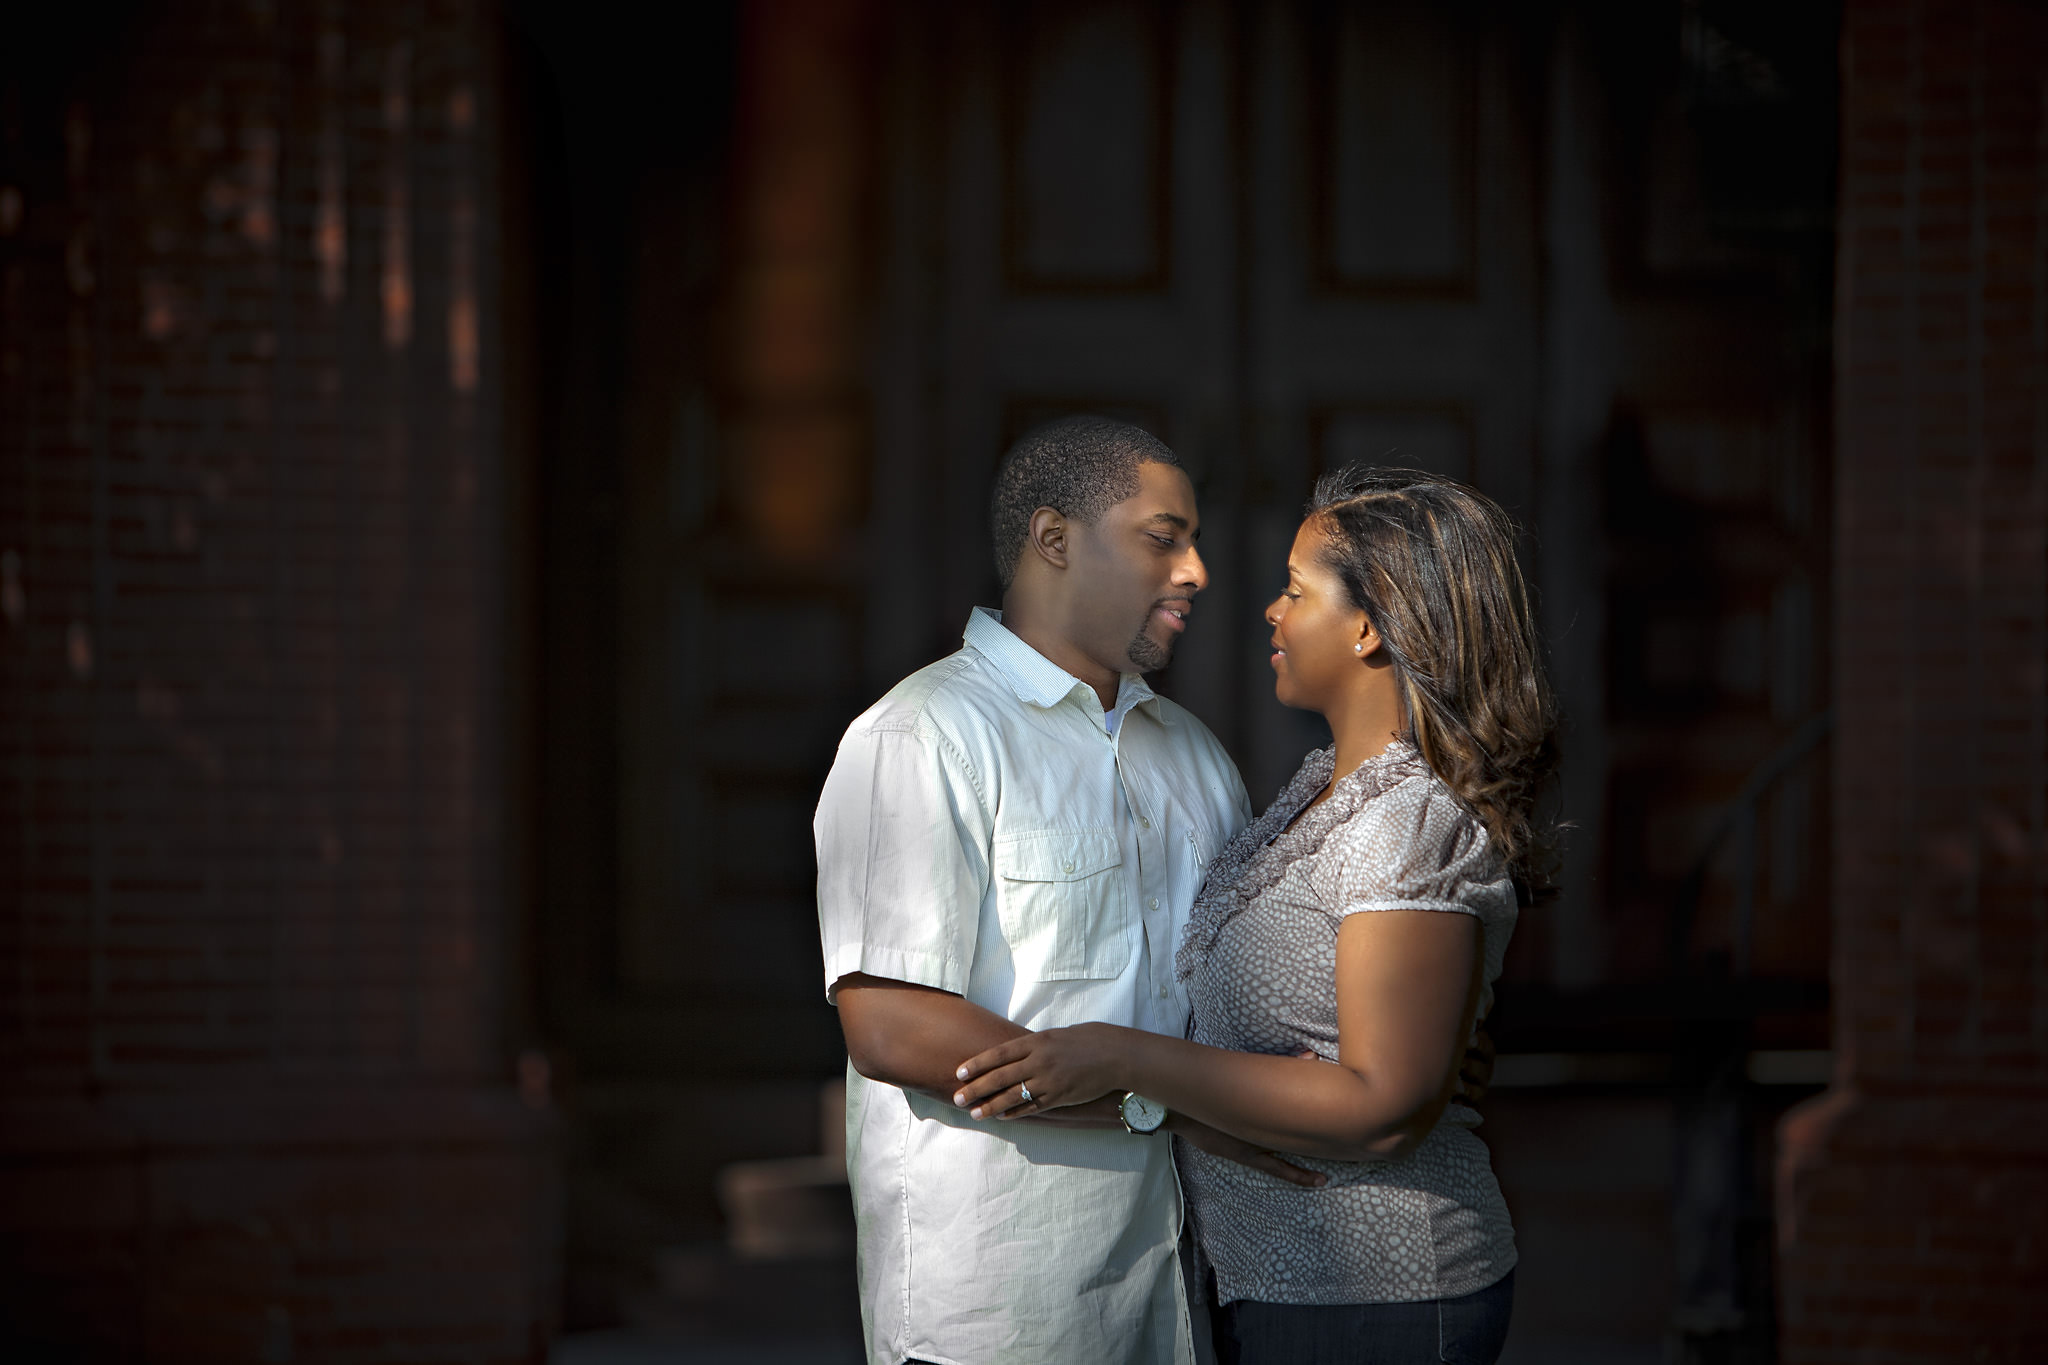 williamsburg wedding photographer wedding gallery #: 70